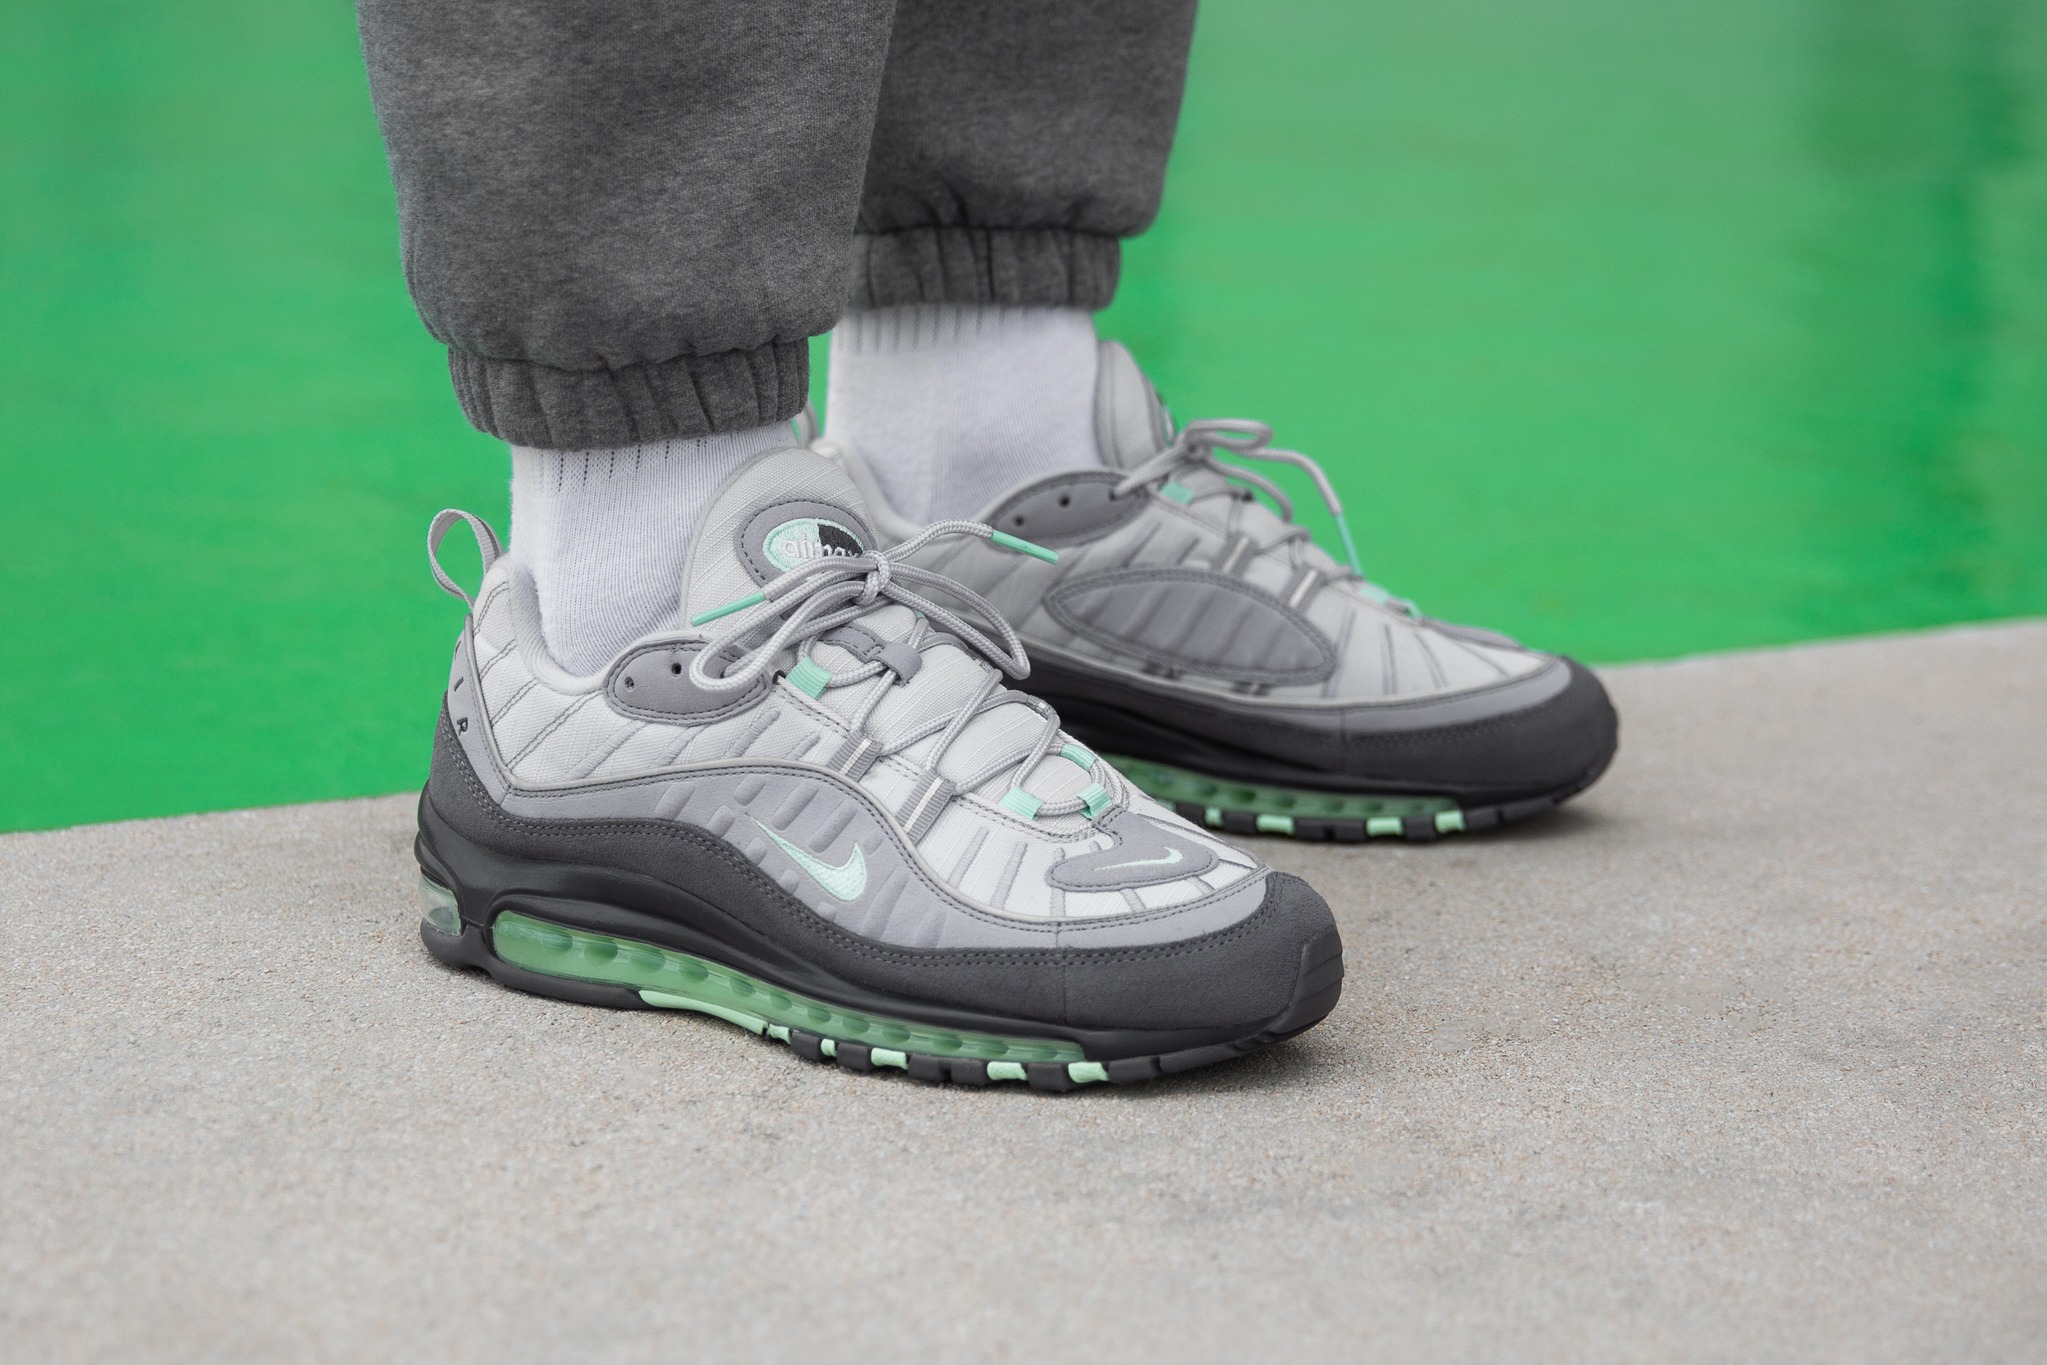 Nike Zoom Grey And Green On Foot Nike Air Max 98